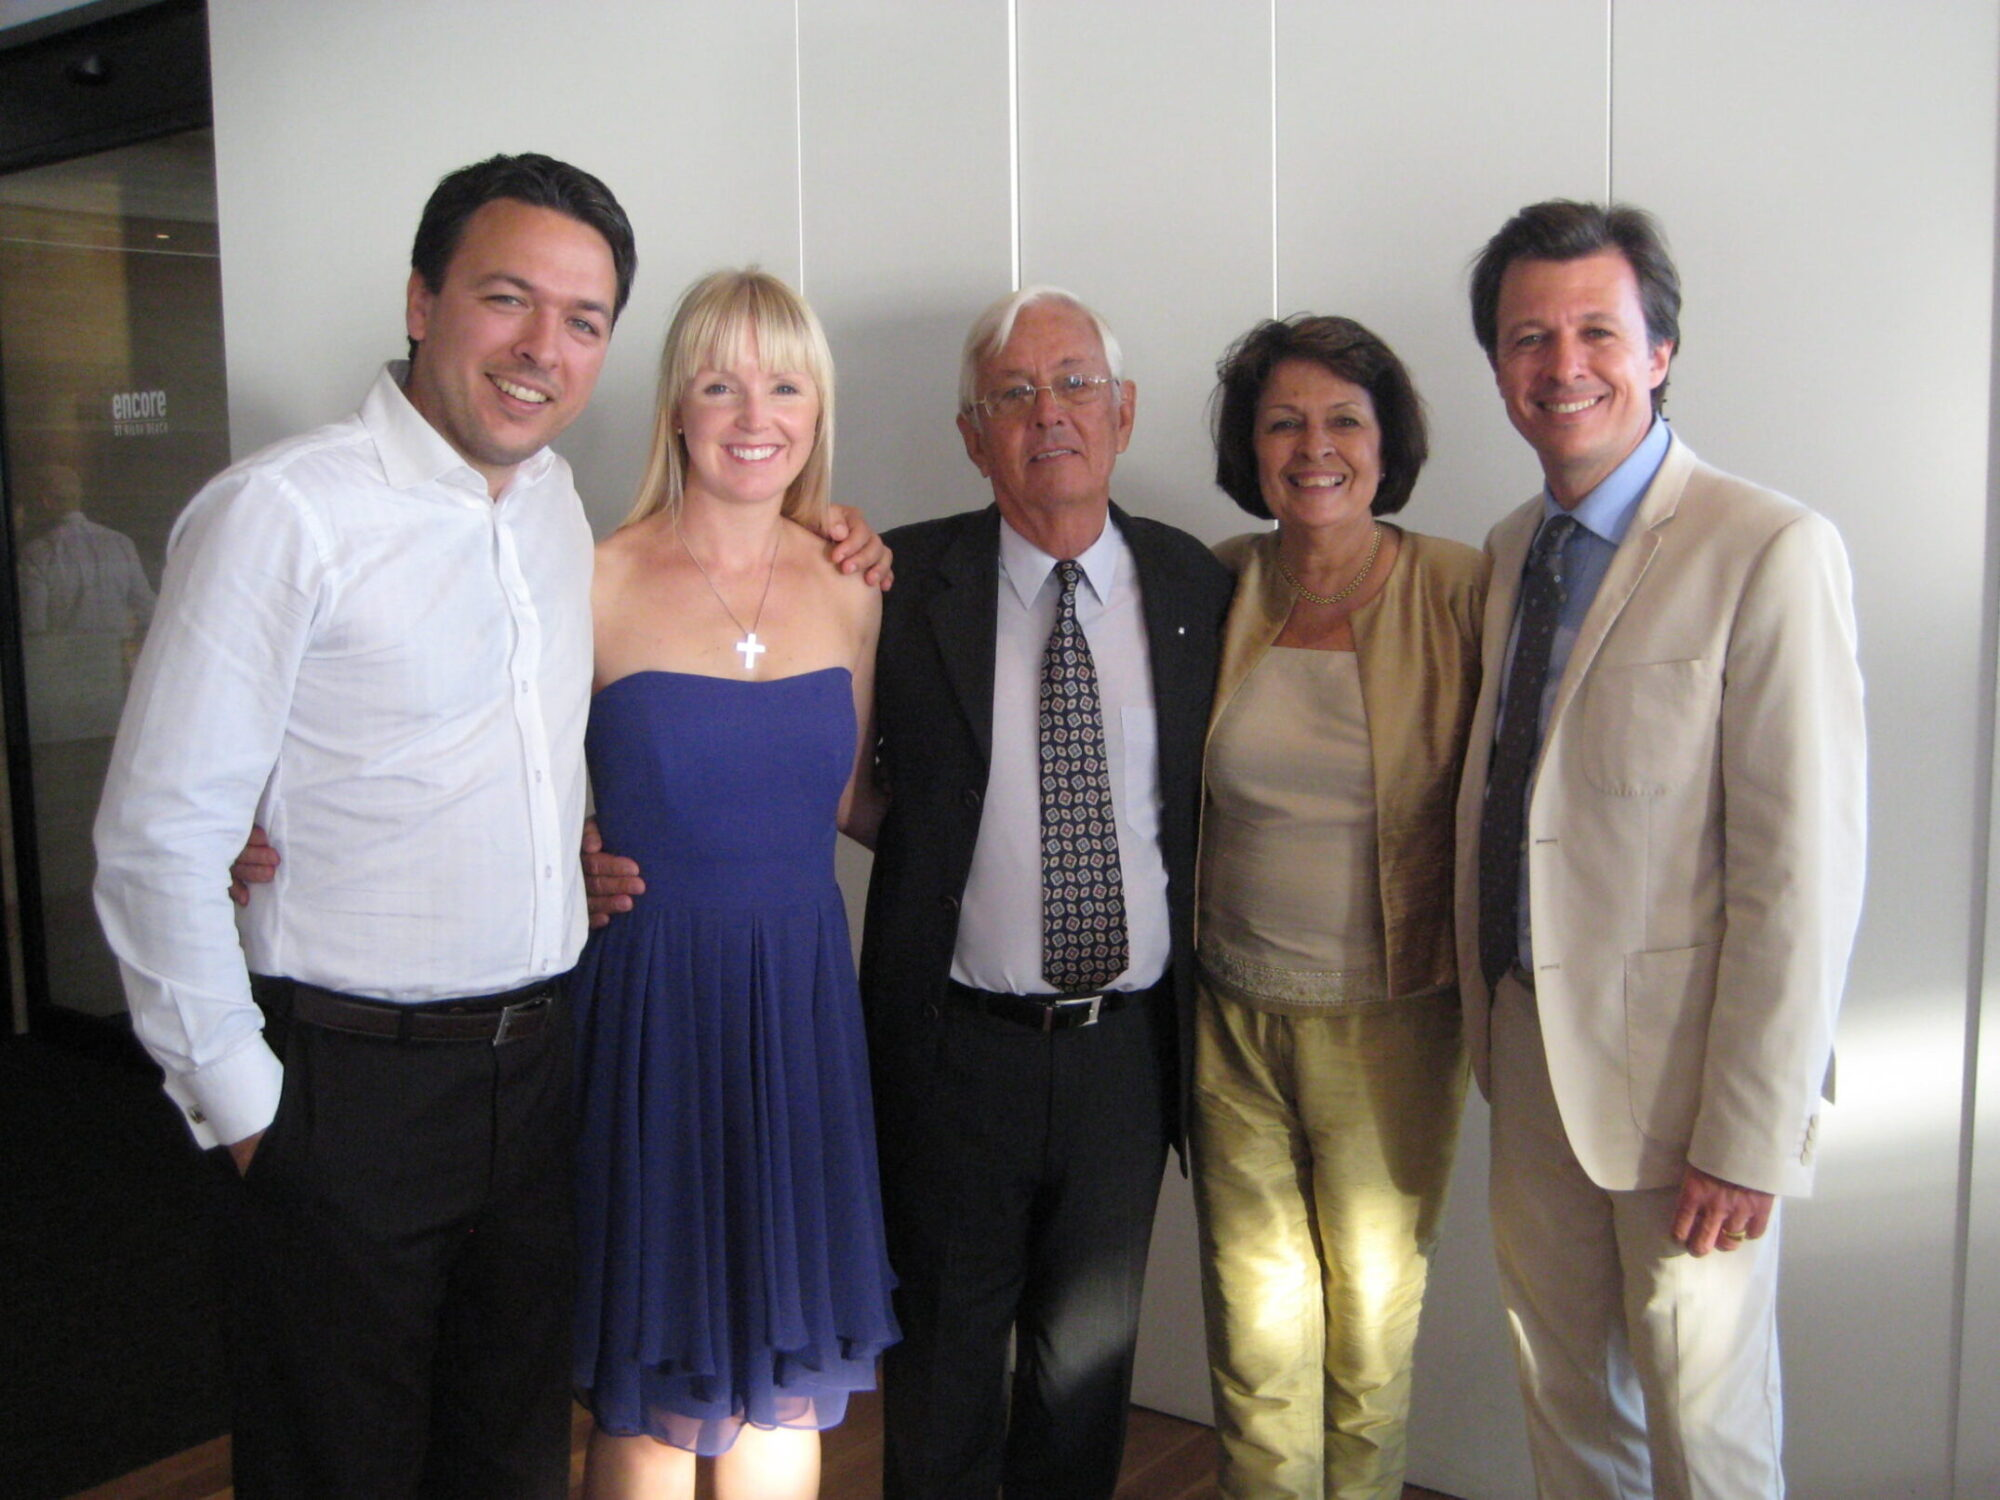 Family photo at a reception in Australia, 2012